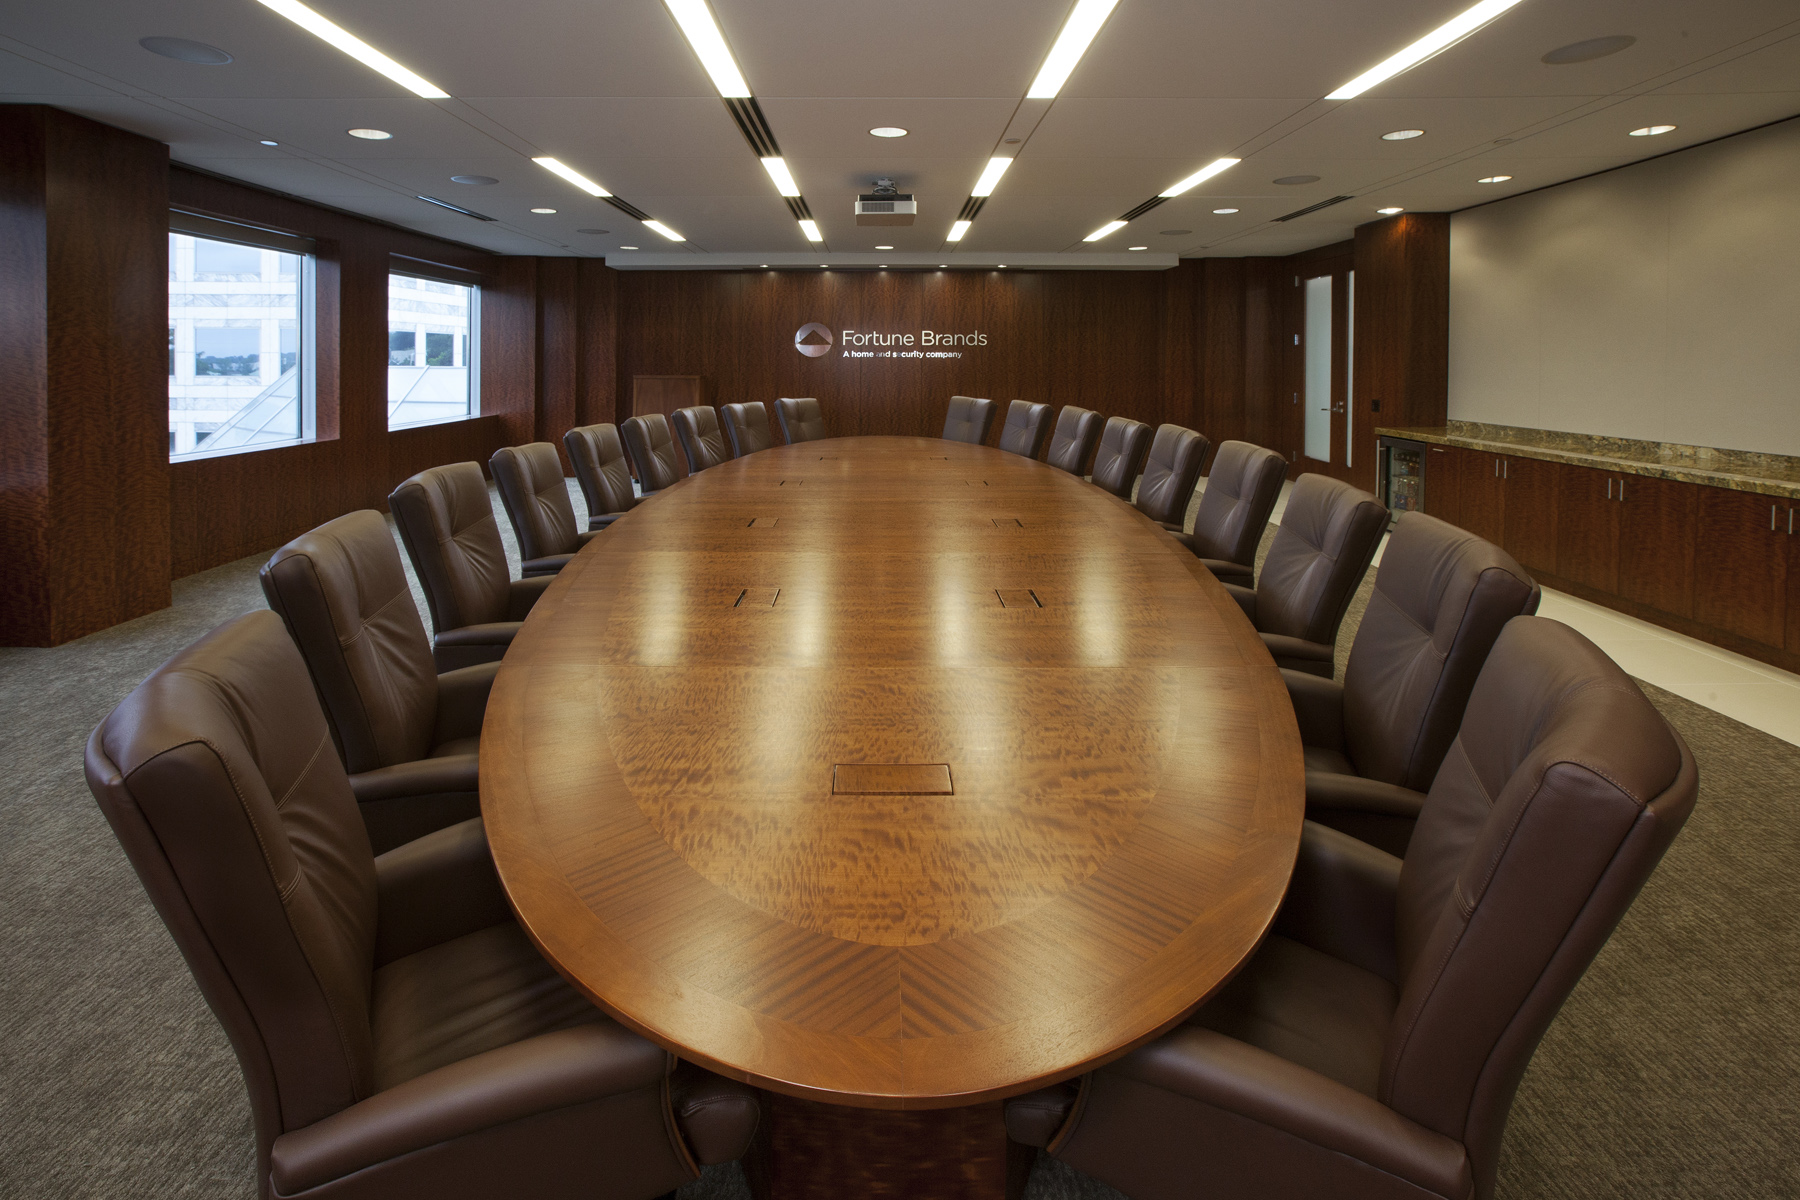 03 Fortune Brands – Board Room